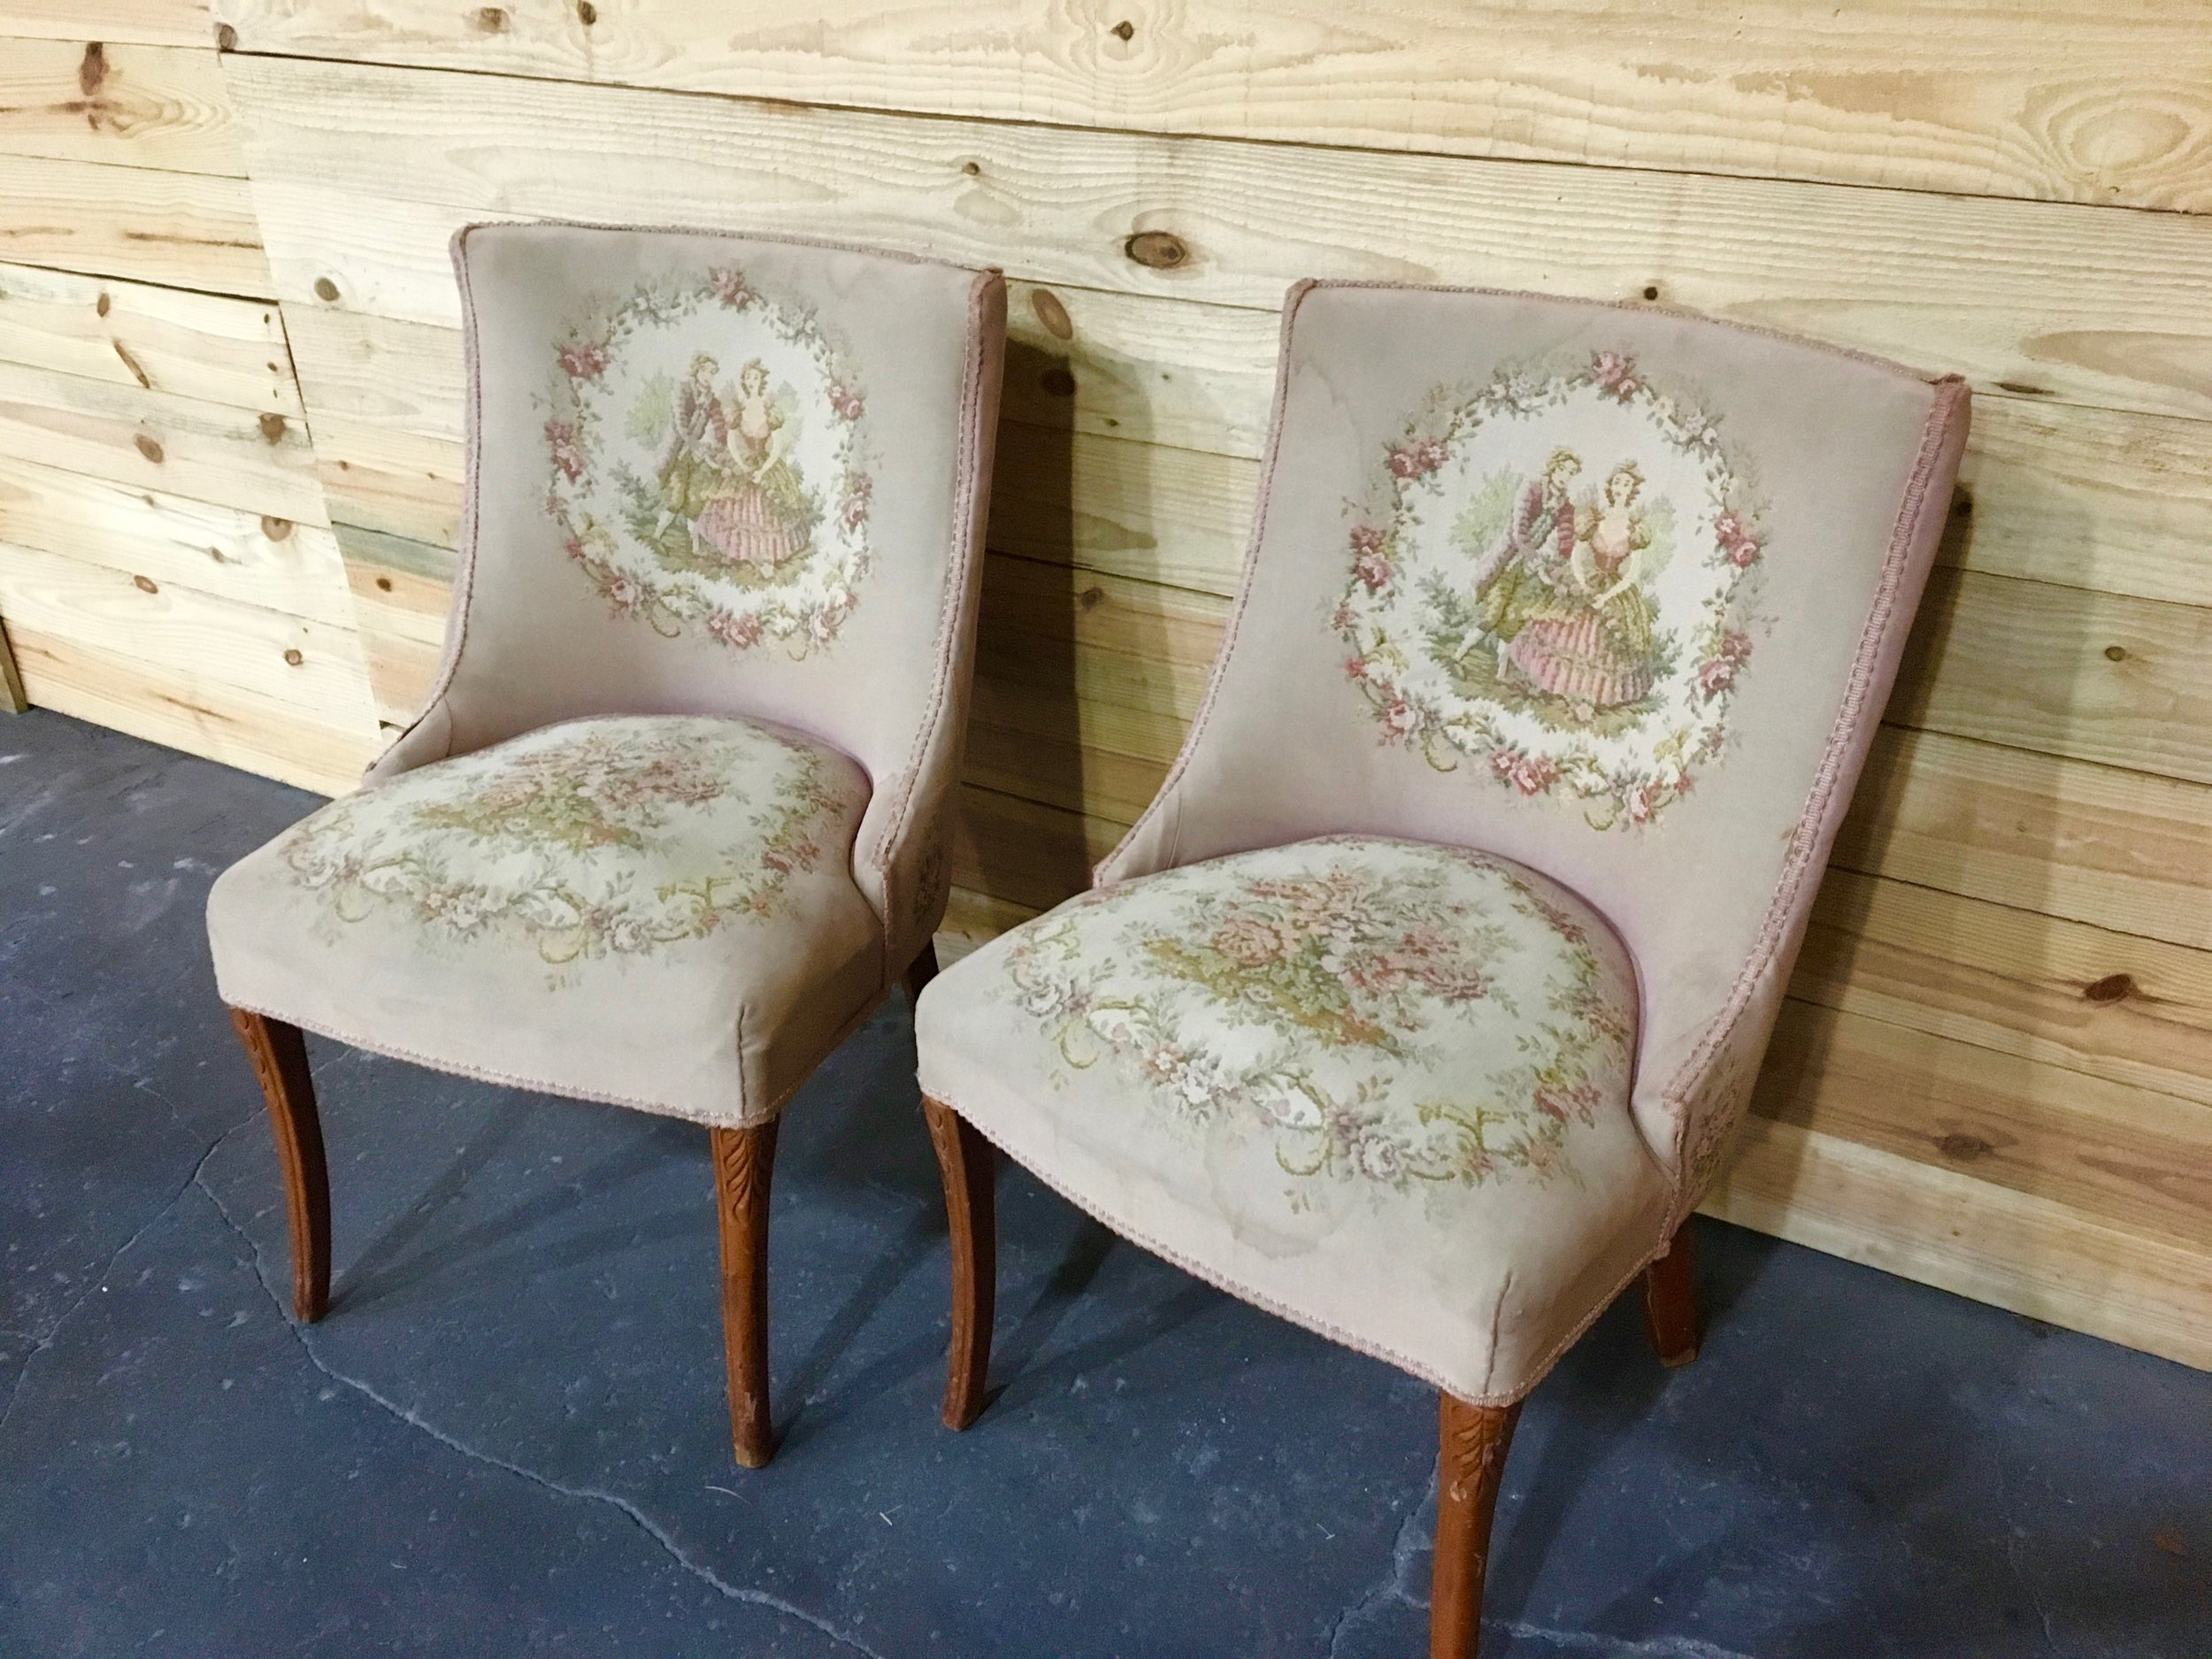 Vintage furniture - 1 of 37 (8).jpg